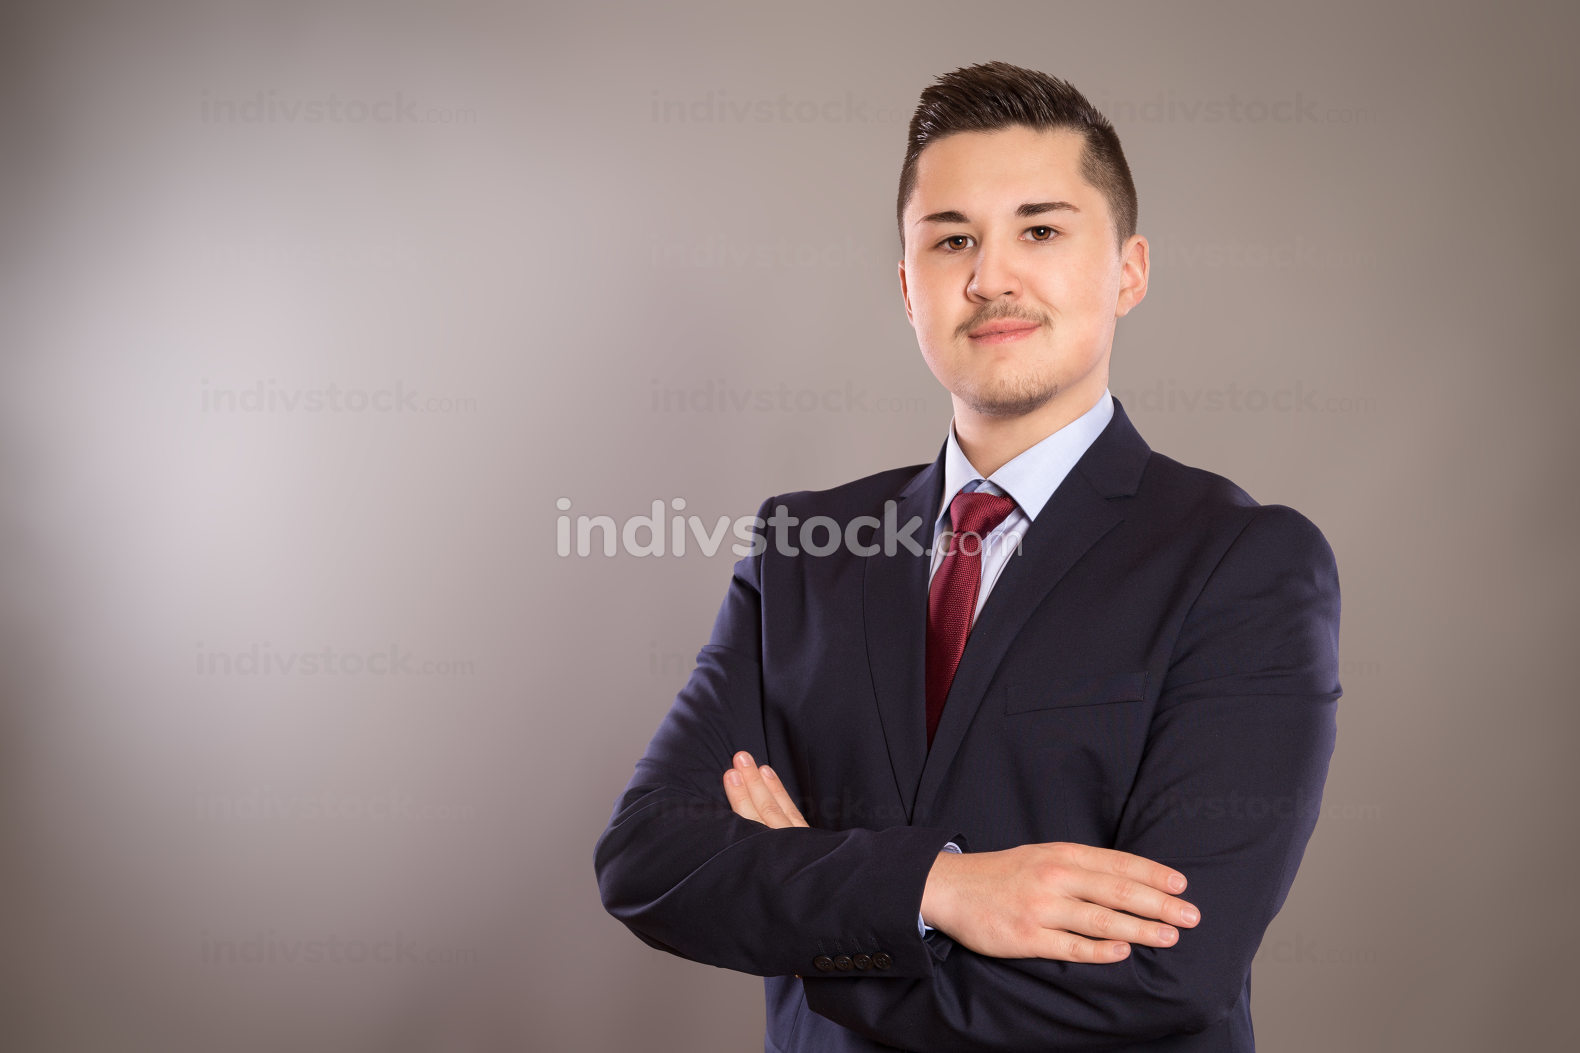 A portrait of a young business man